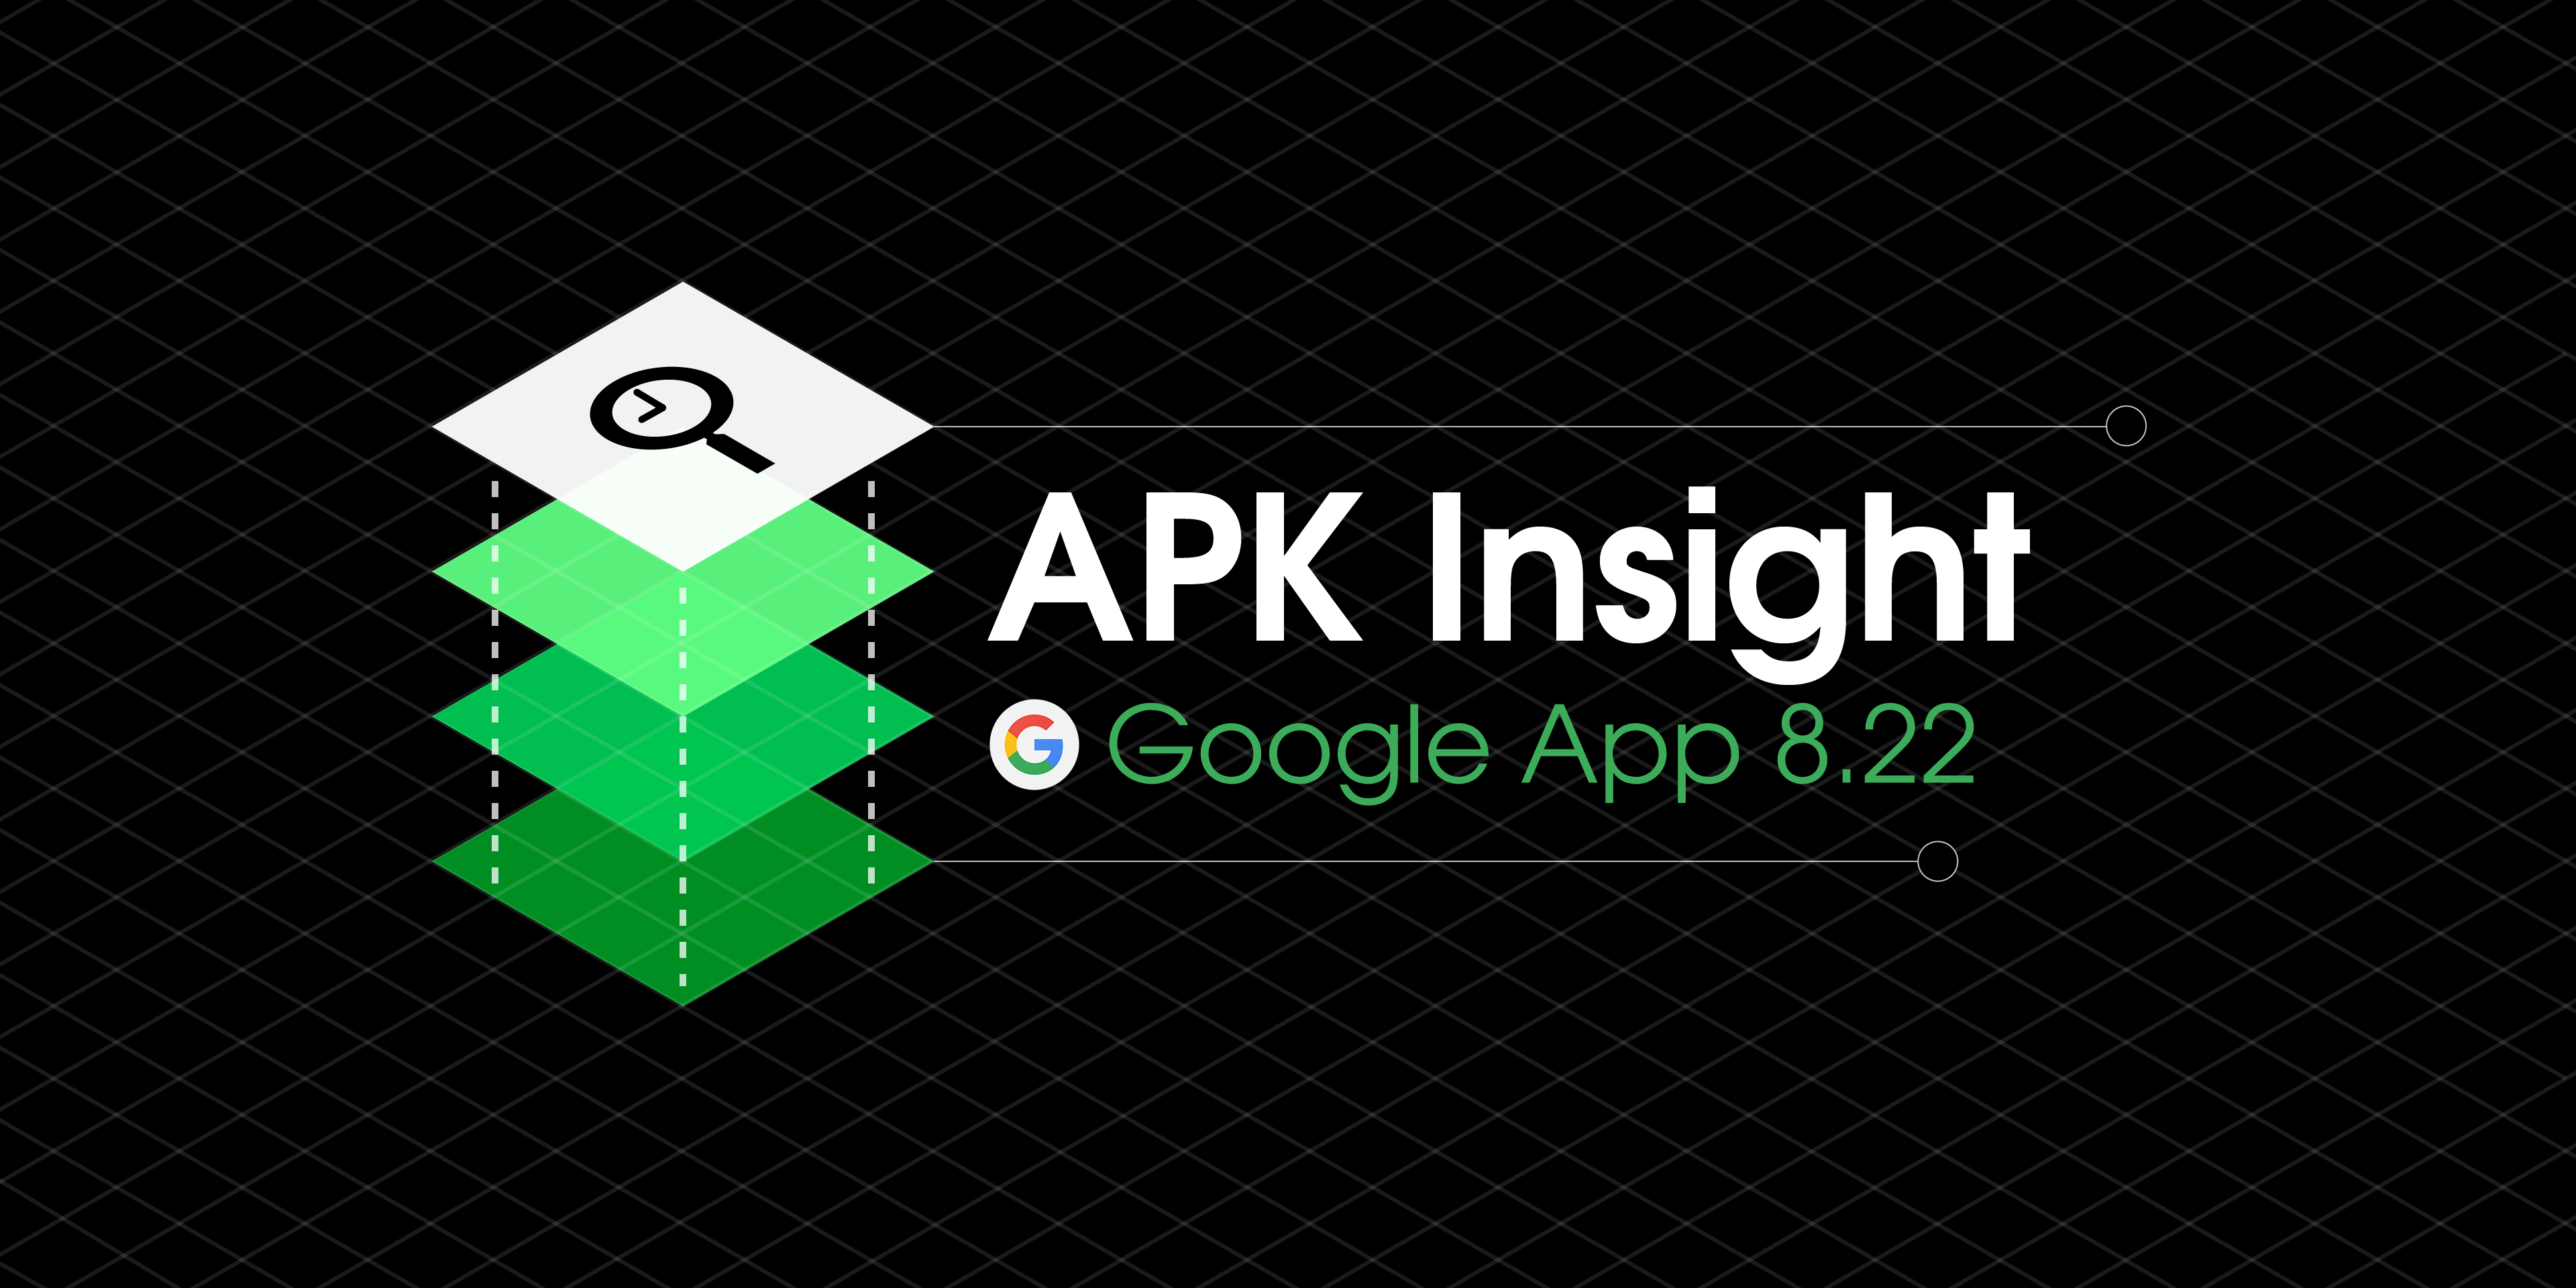 google app 8 22 details pixel stand assistant household preps podcasts auto downloads apk insight